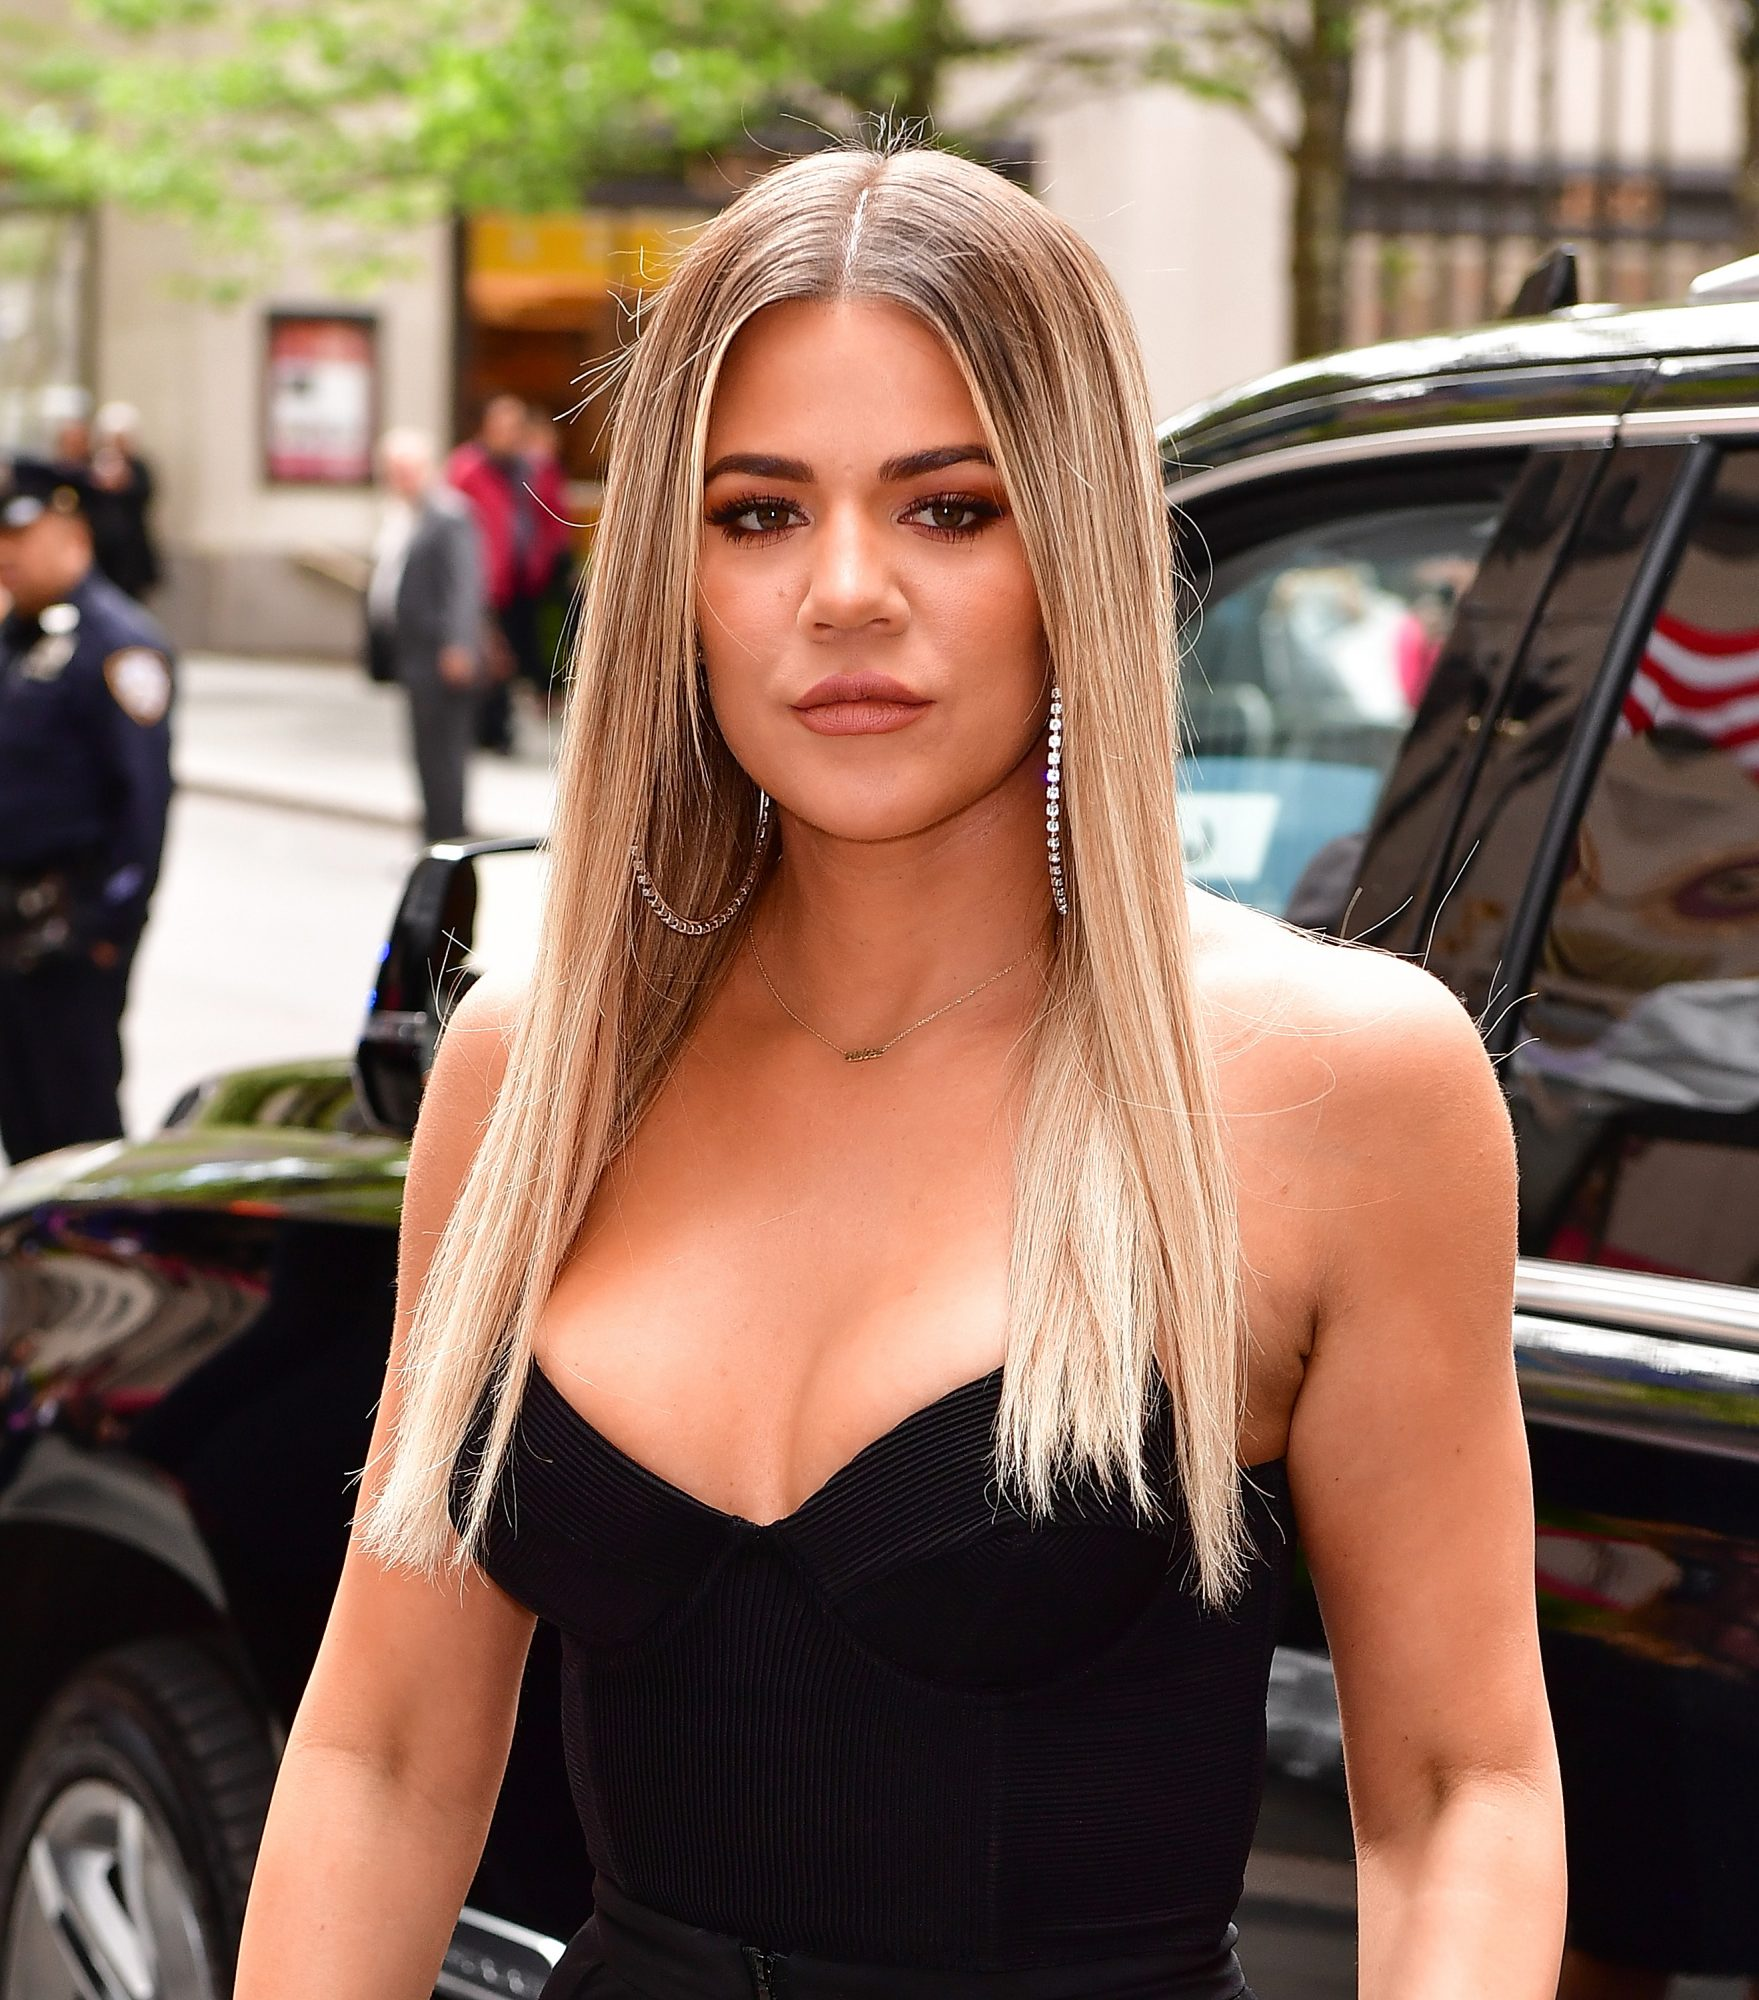 Khloé Kardashian Bares Her Beach Bum in Cheeky One-Piece Swimsuit While on Vacation in Mexico